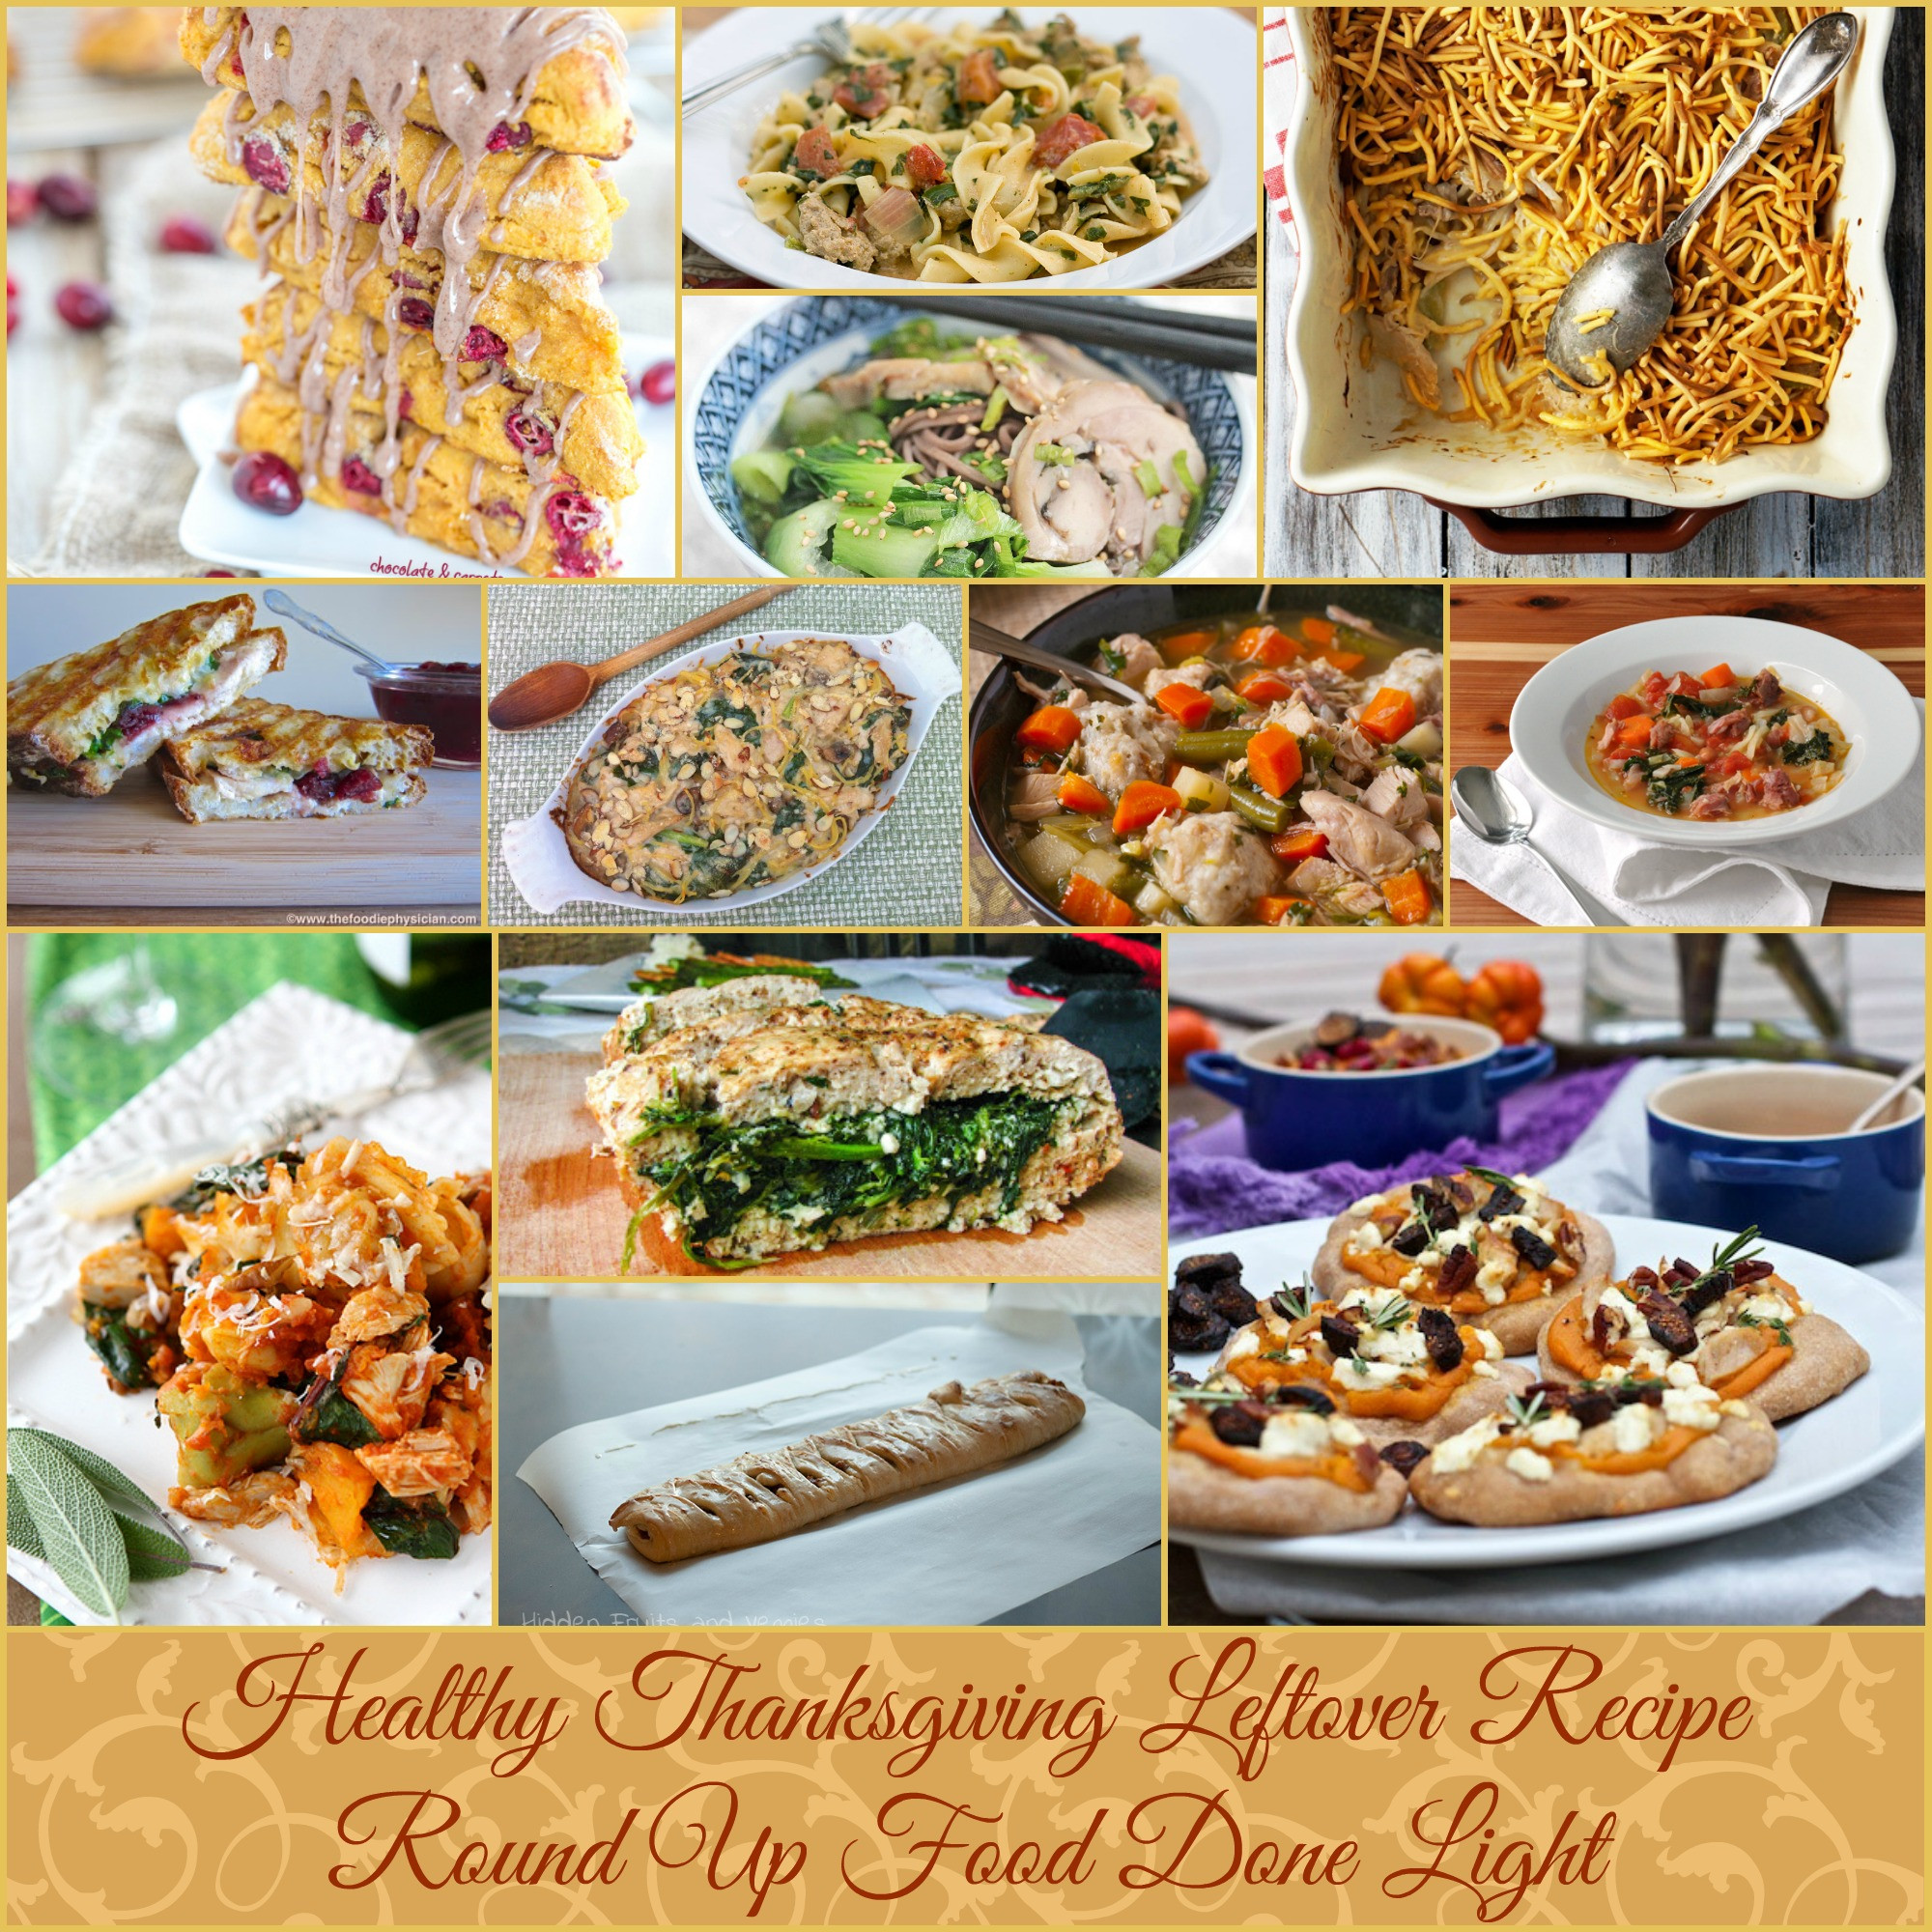 Healthy Thanksgiving Recipes  Healthy Thanksgiving Leftover Recipe Round Up